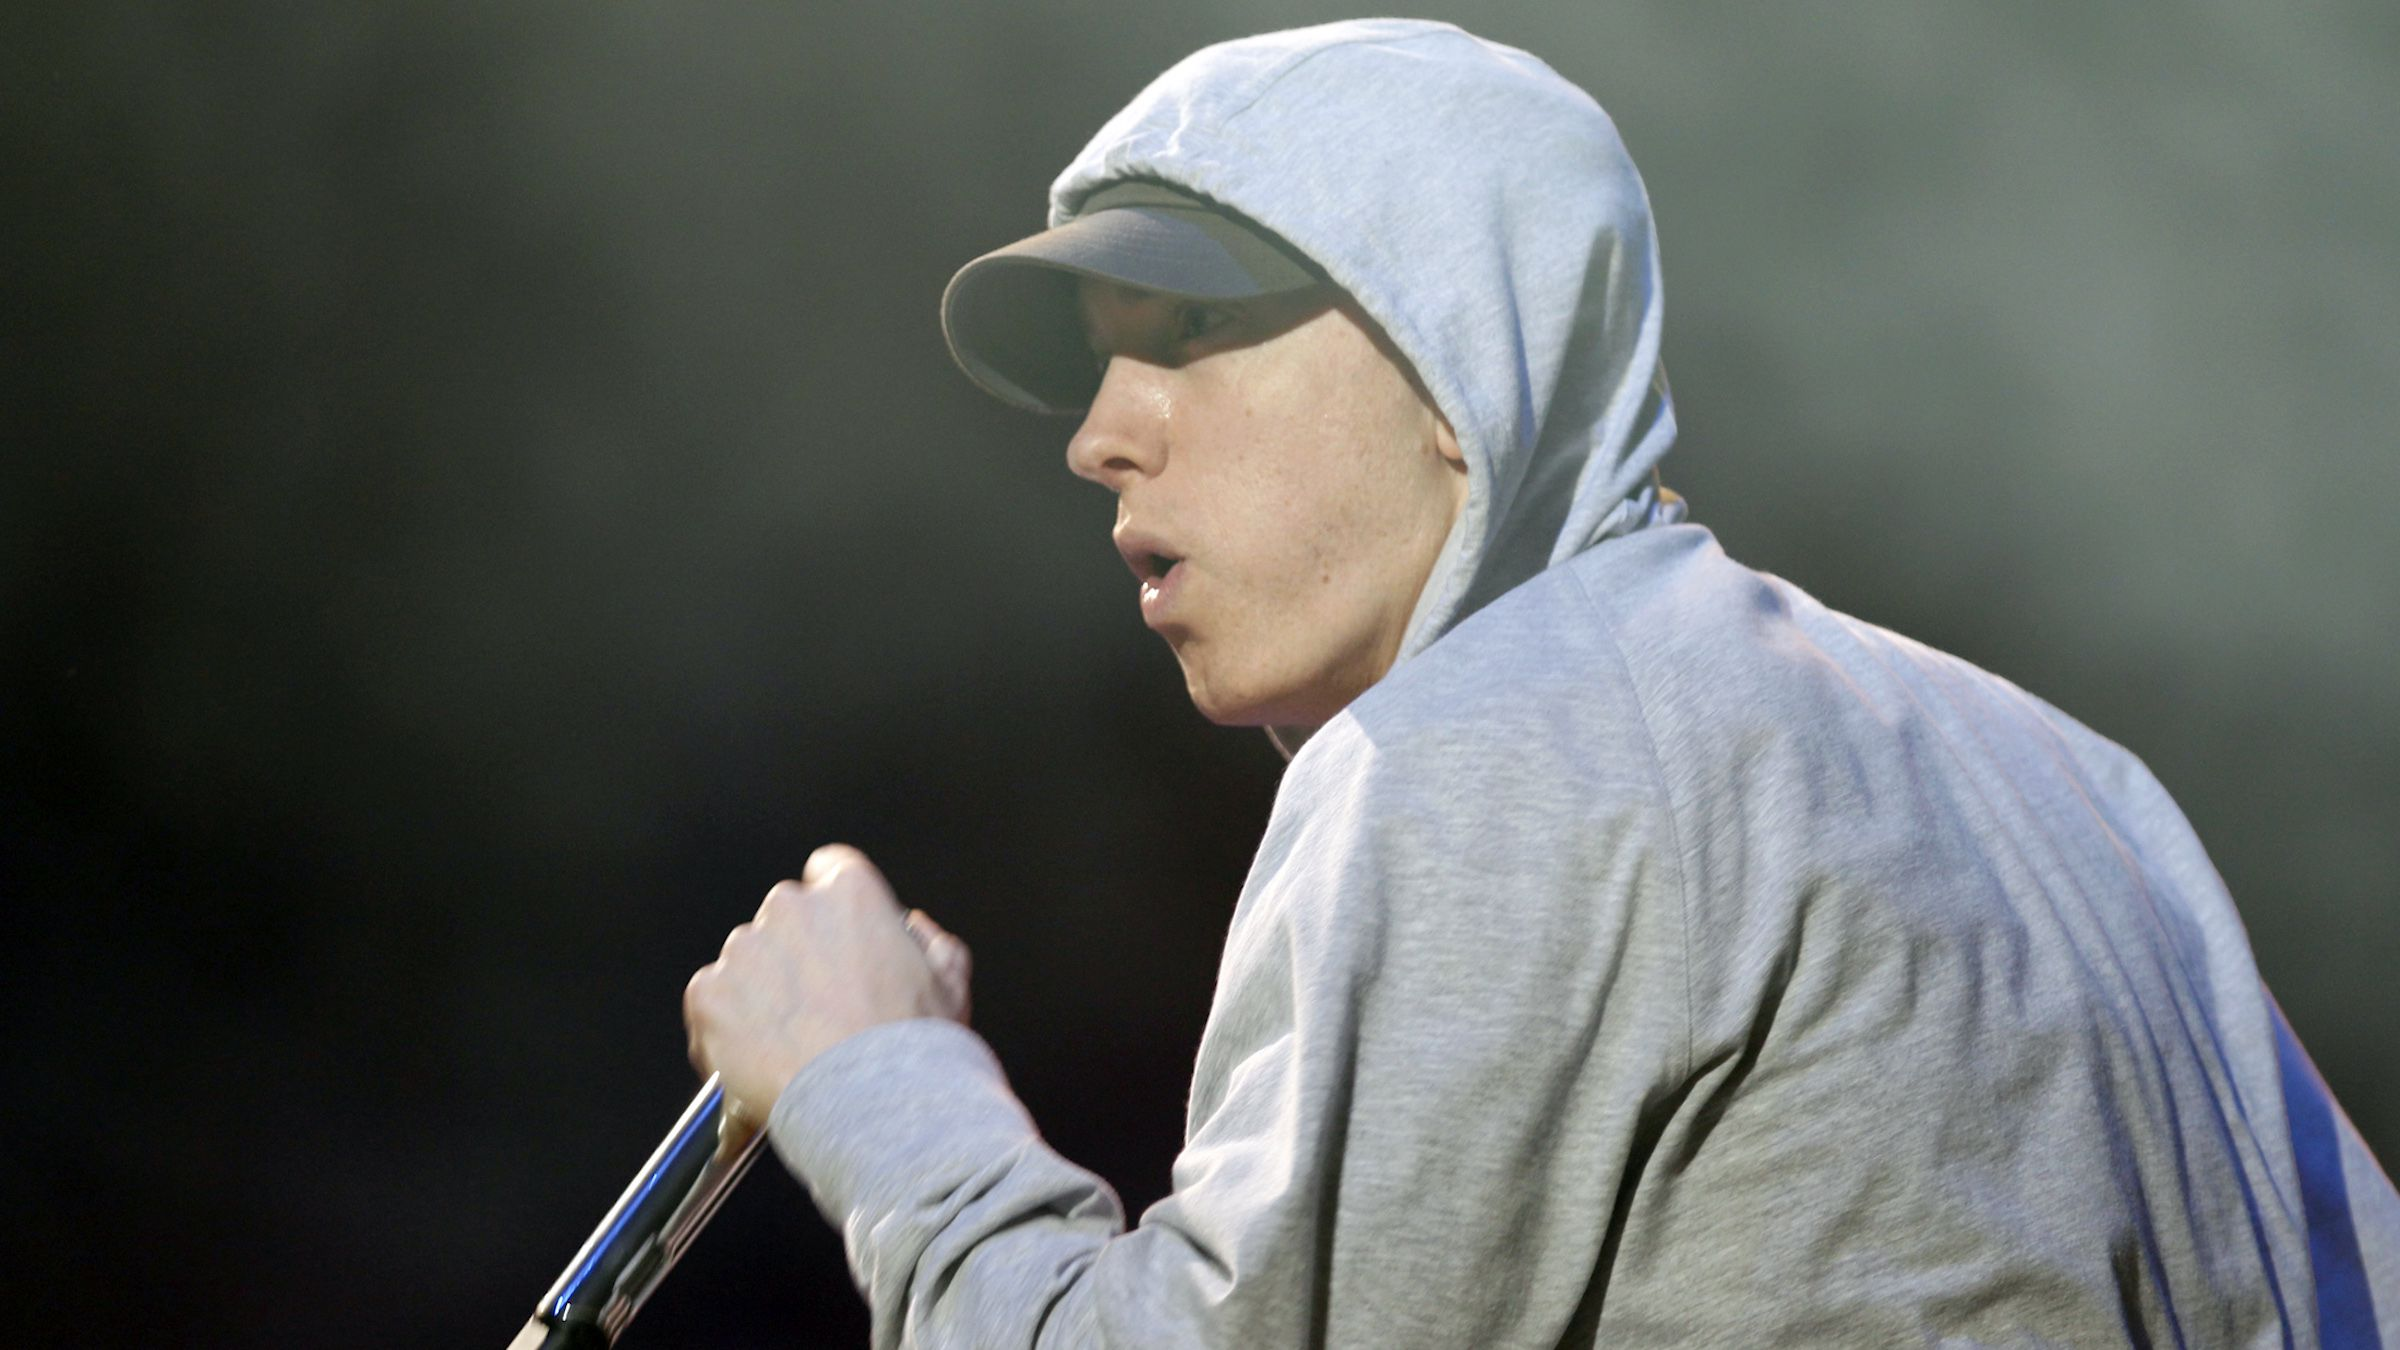 Eminem performing during the Abu Dhabi F1 Grand Prix